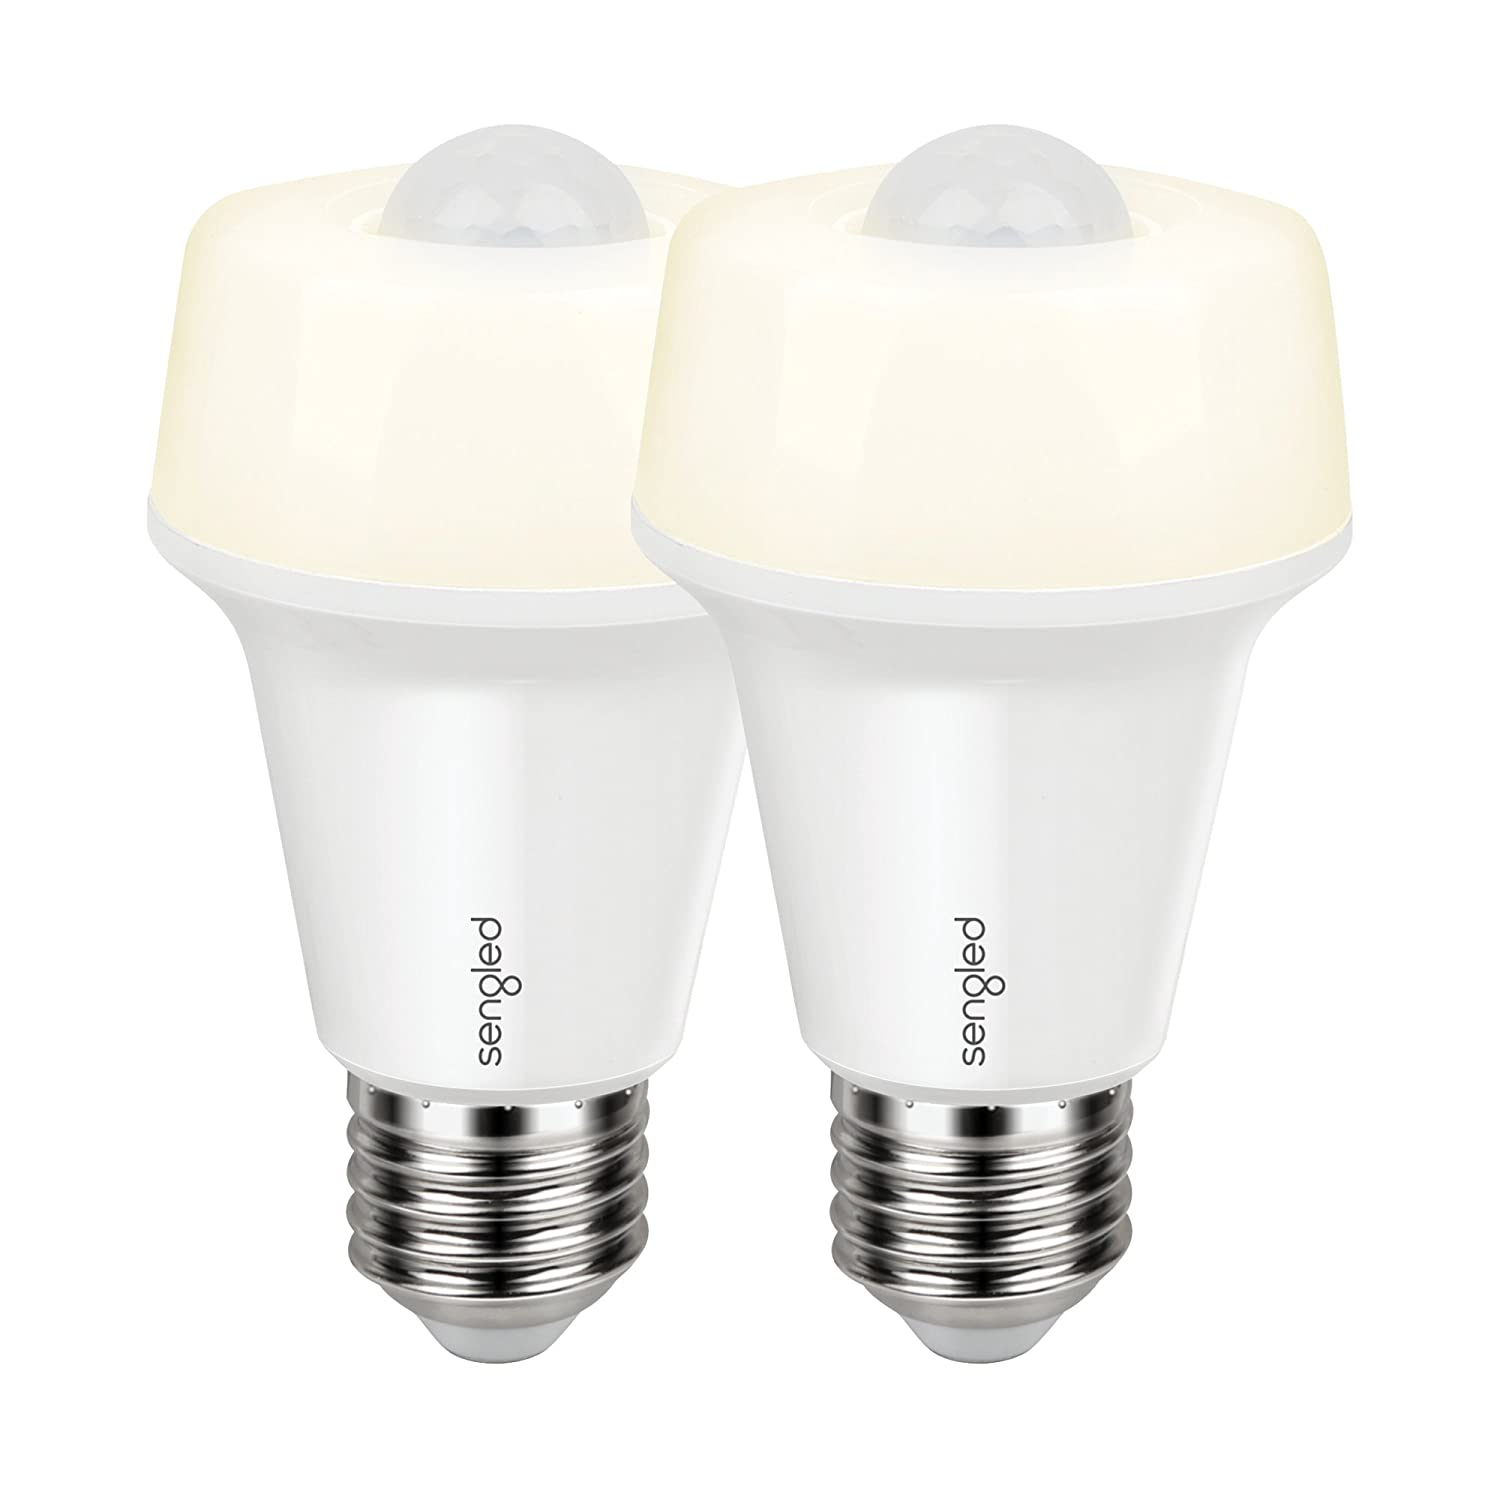 Sengled Smartsense LED Light Bulb with Motion Sensor, A19 Smart LED Night Light Soft White 2700K, E26 Base 60W Equivalent, 2 Pack SSA19ND827-P2